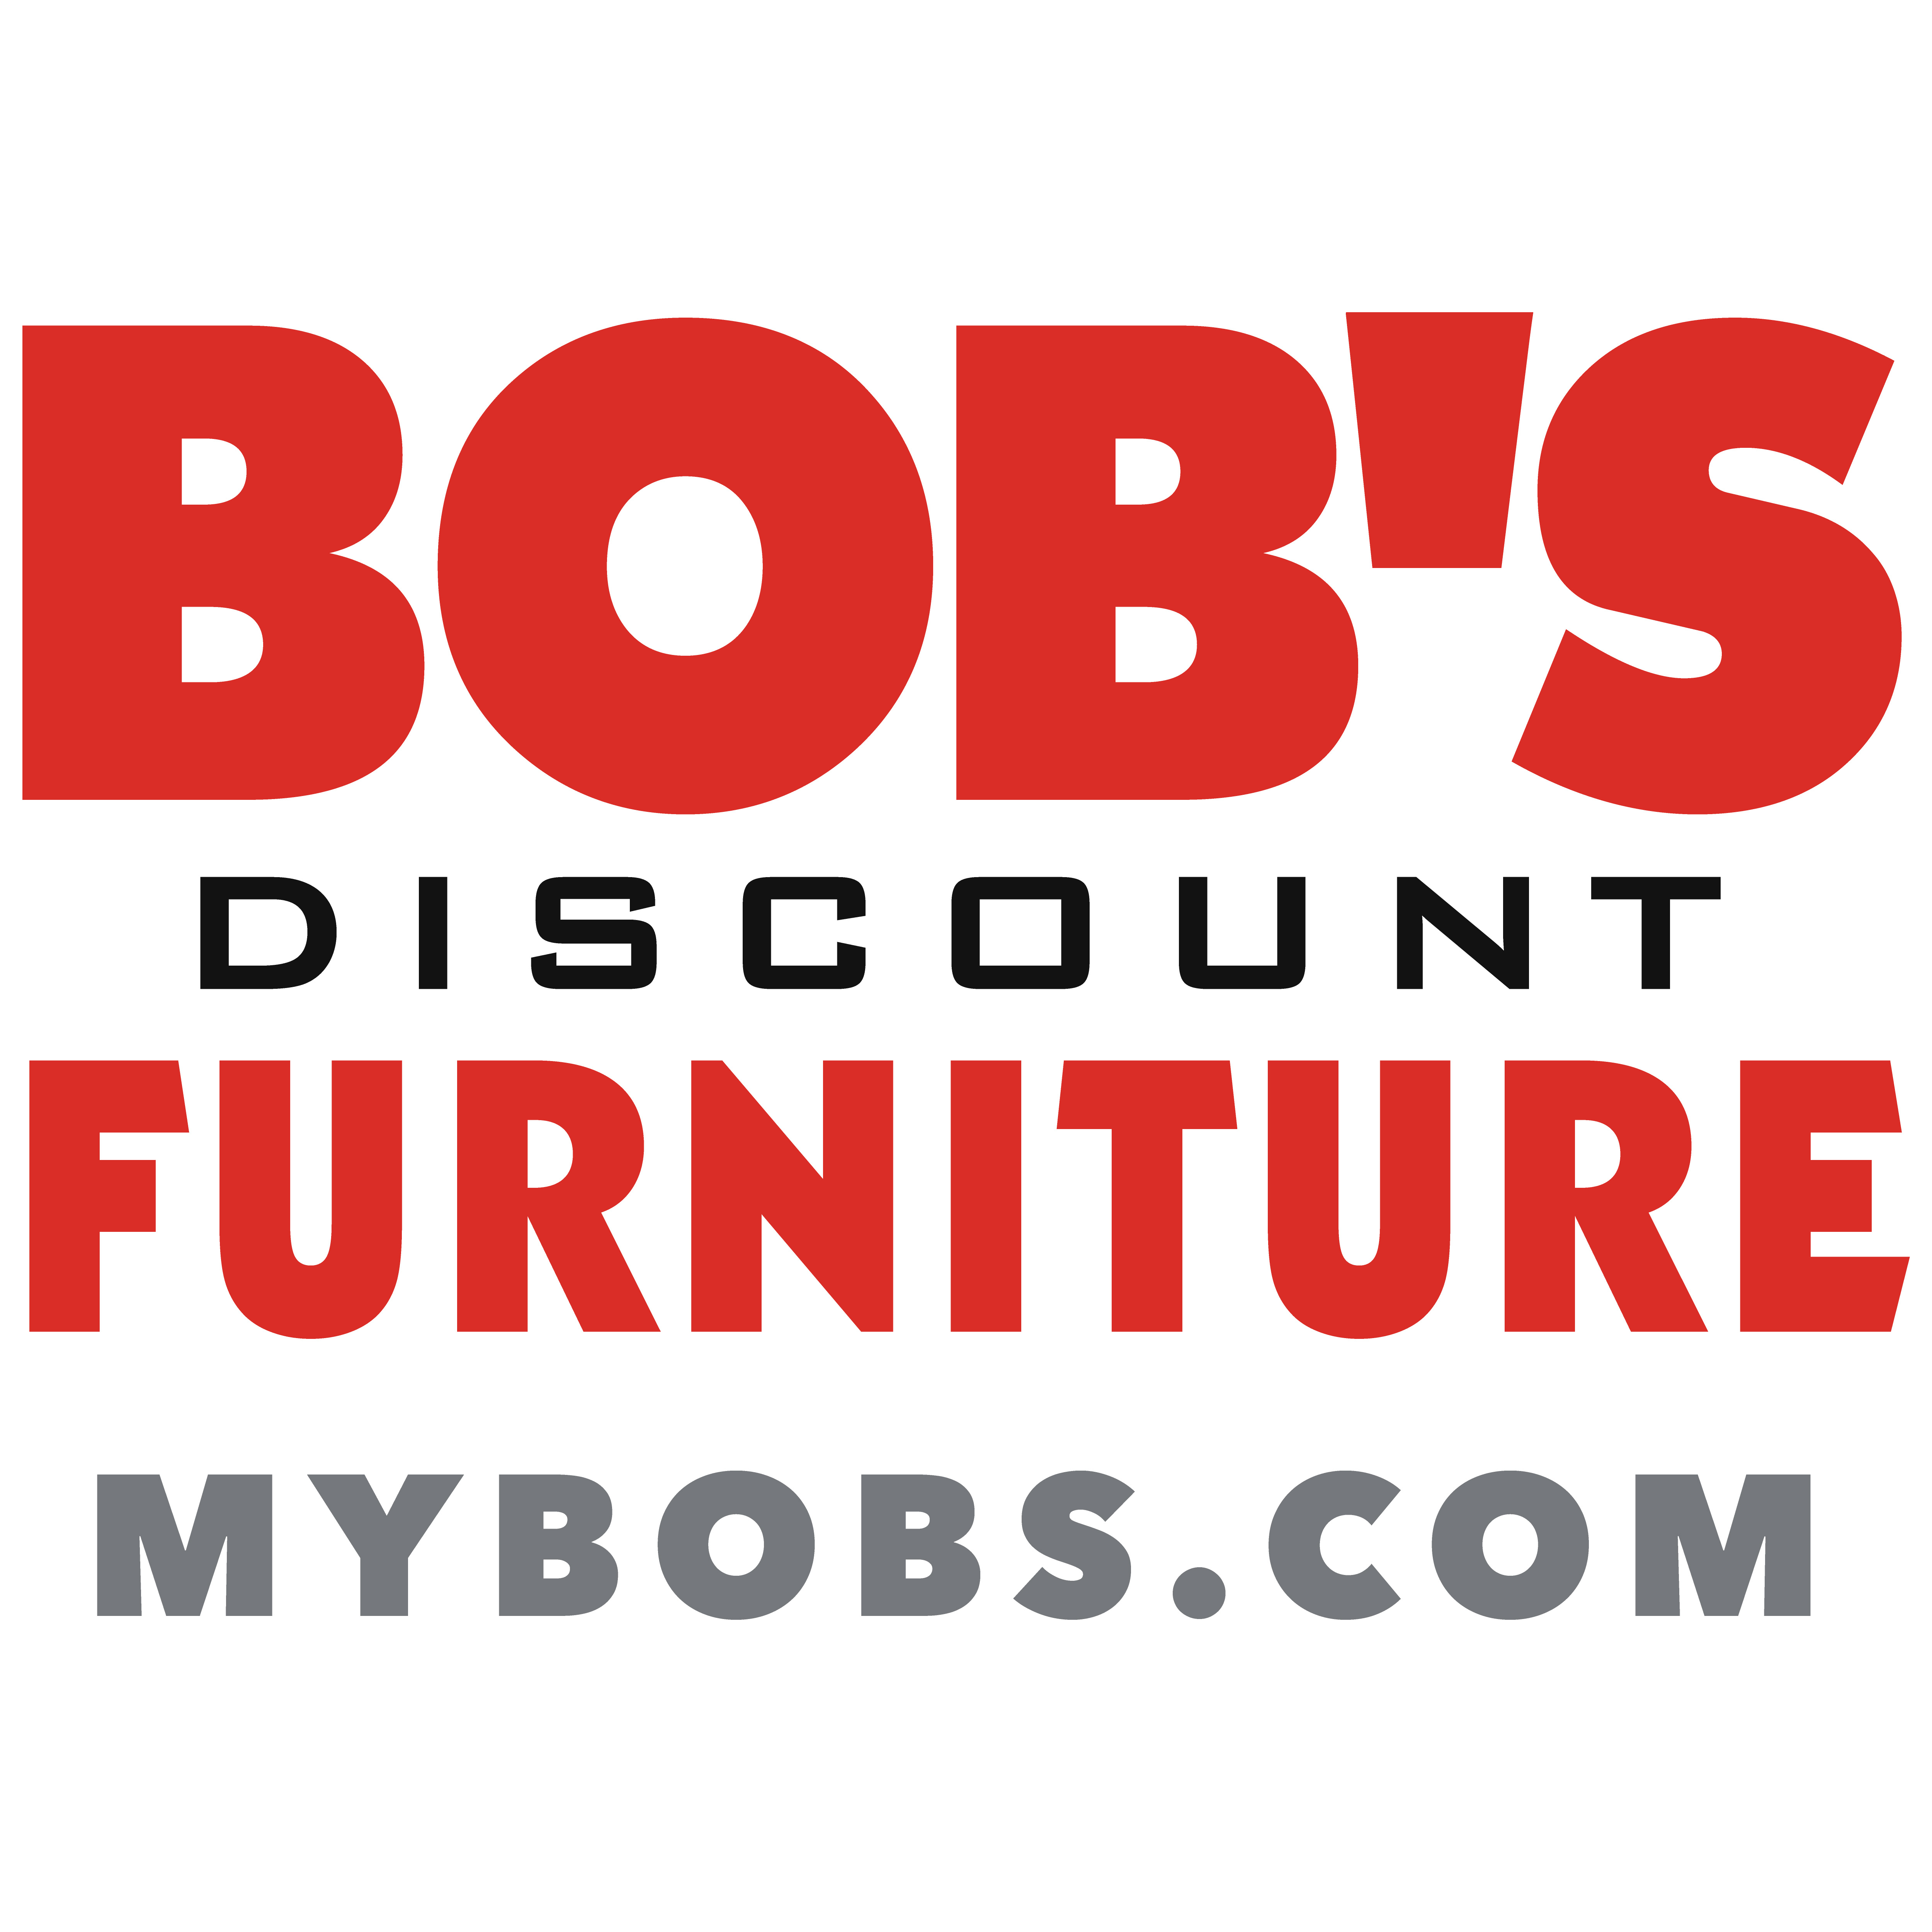 Furniture Stores In Valencia Ca Bob S Discount Furniture And Mattress Store Valencia Ca 91381